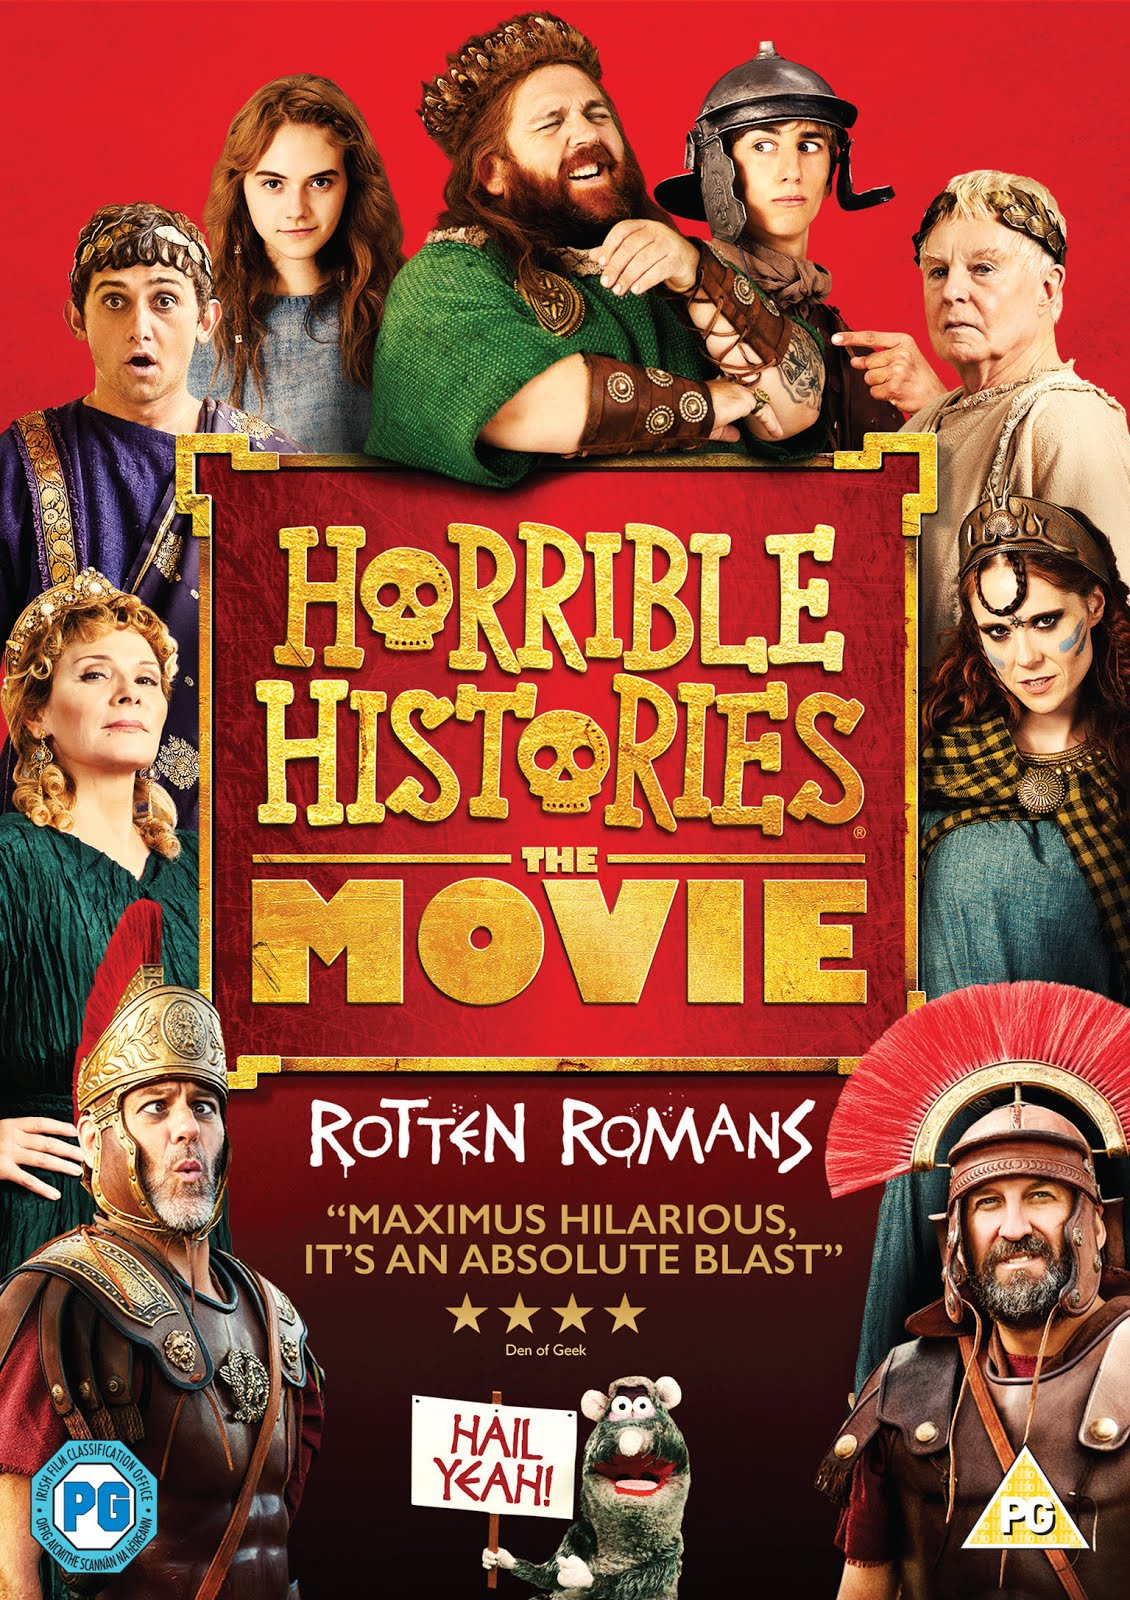 Horrible Histories The Movie Rotten Romans (2019) 250MB WEB-DL 480p